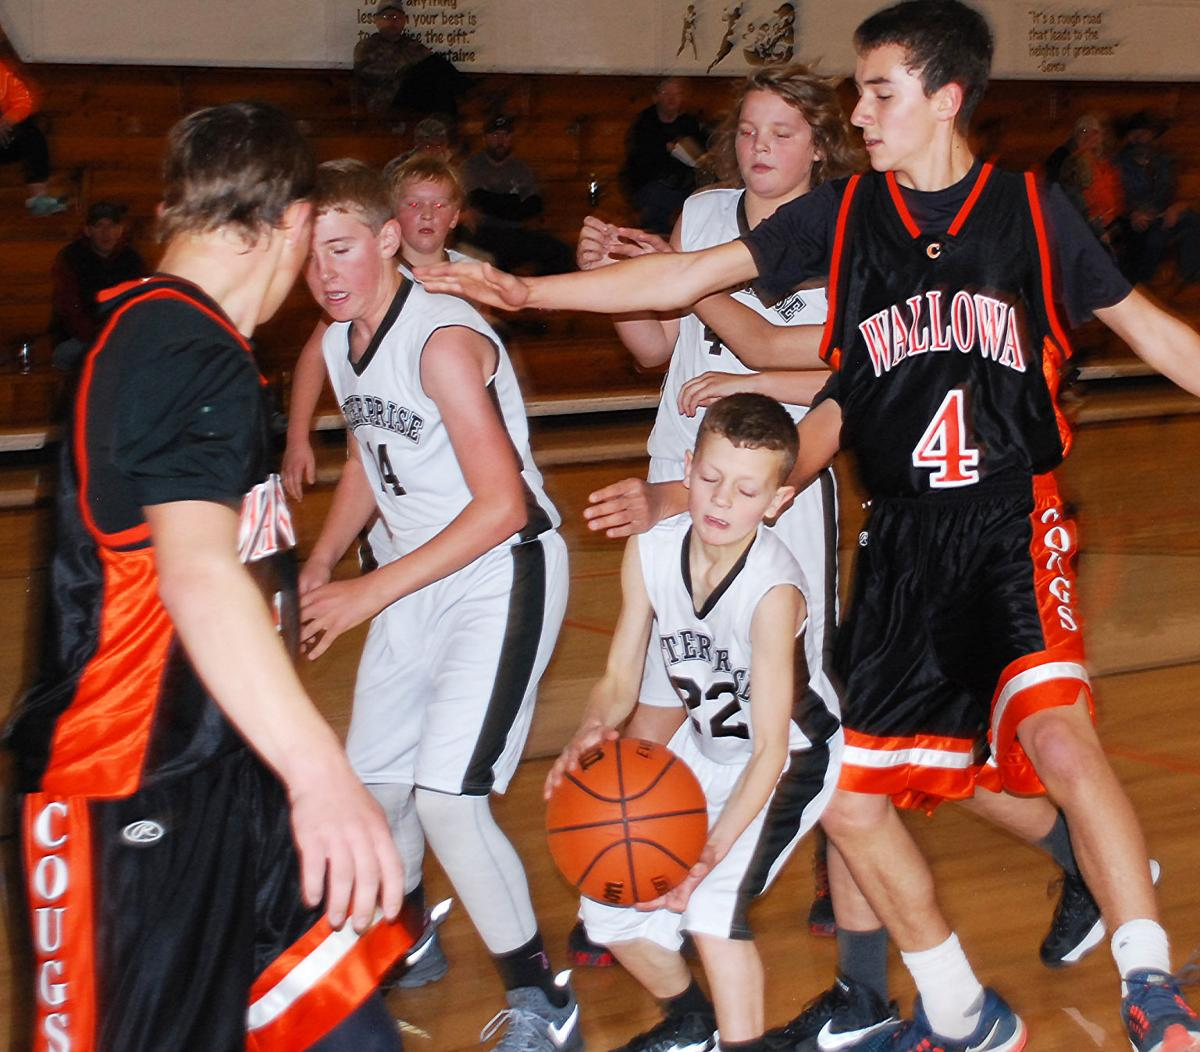 Wallowa Eighth-graders victorious